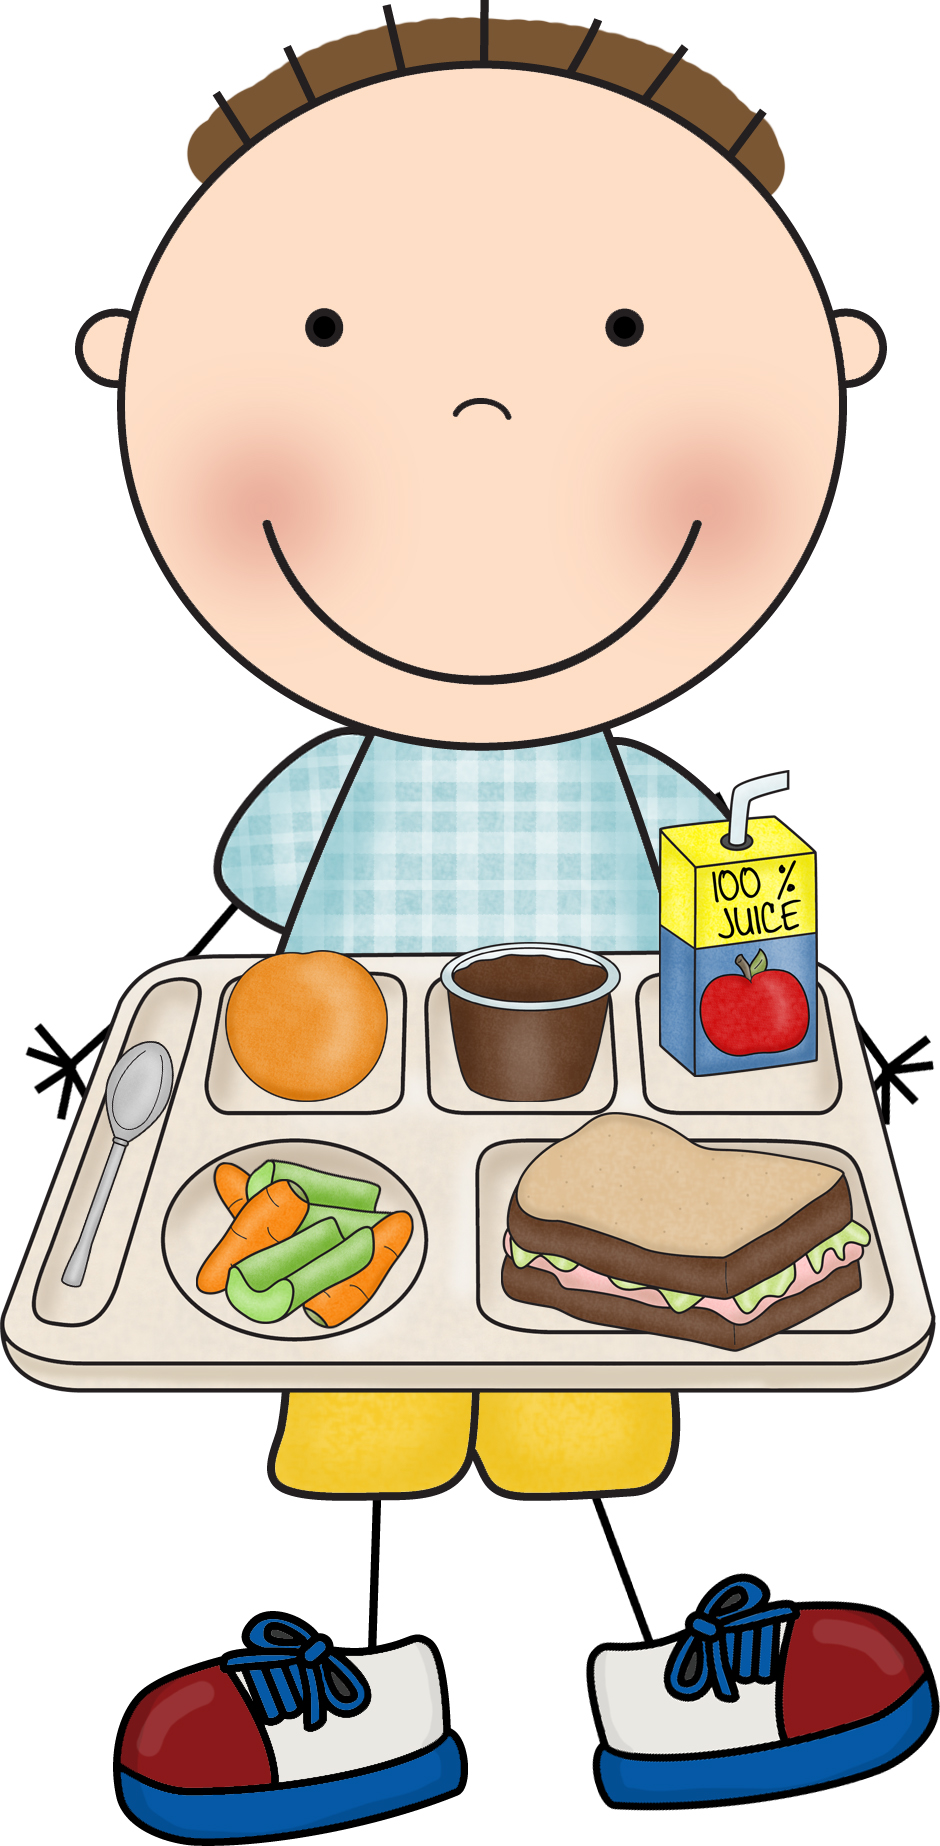 Lunch Clipart - Tumundografico